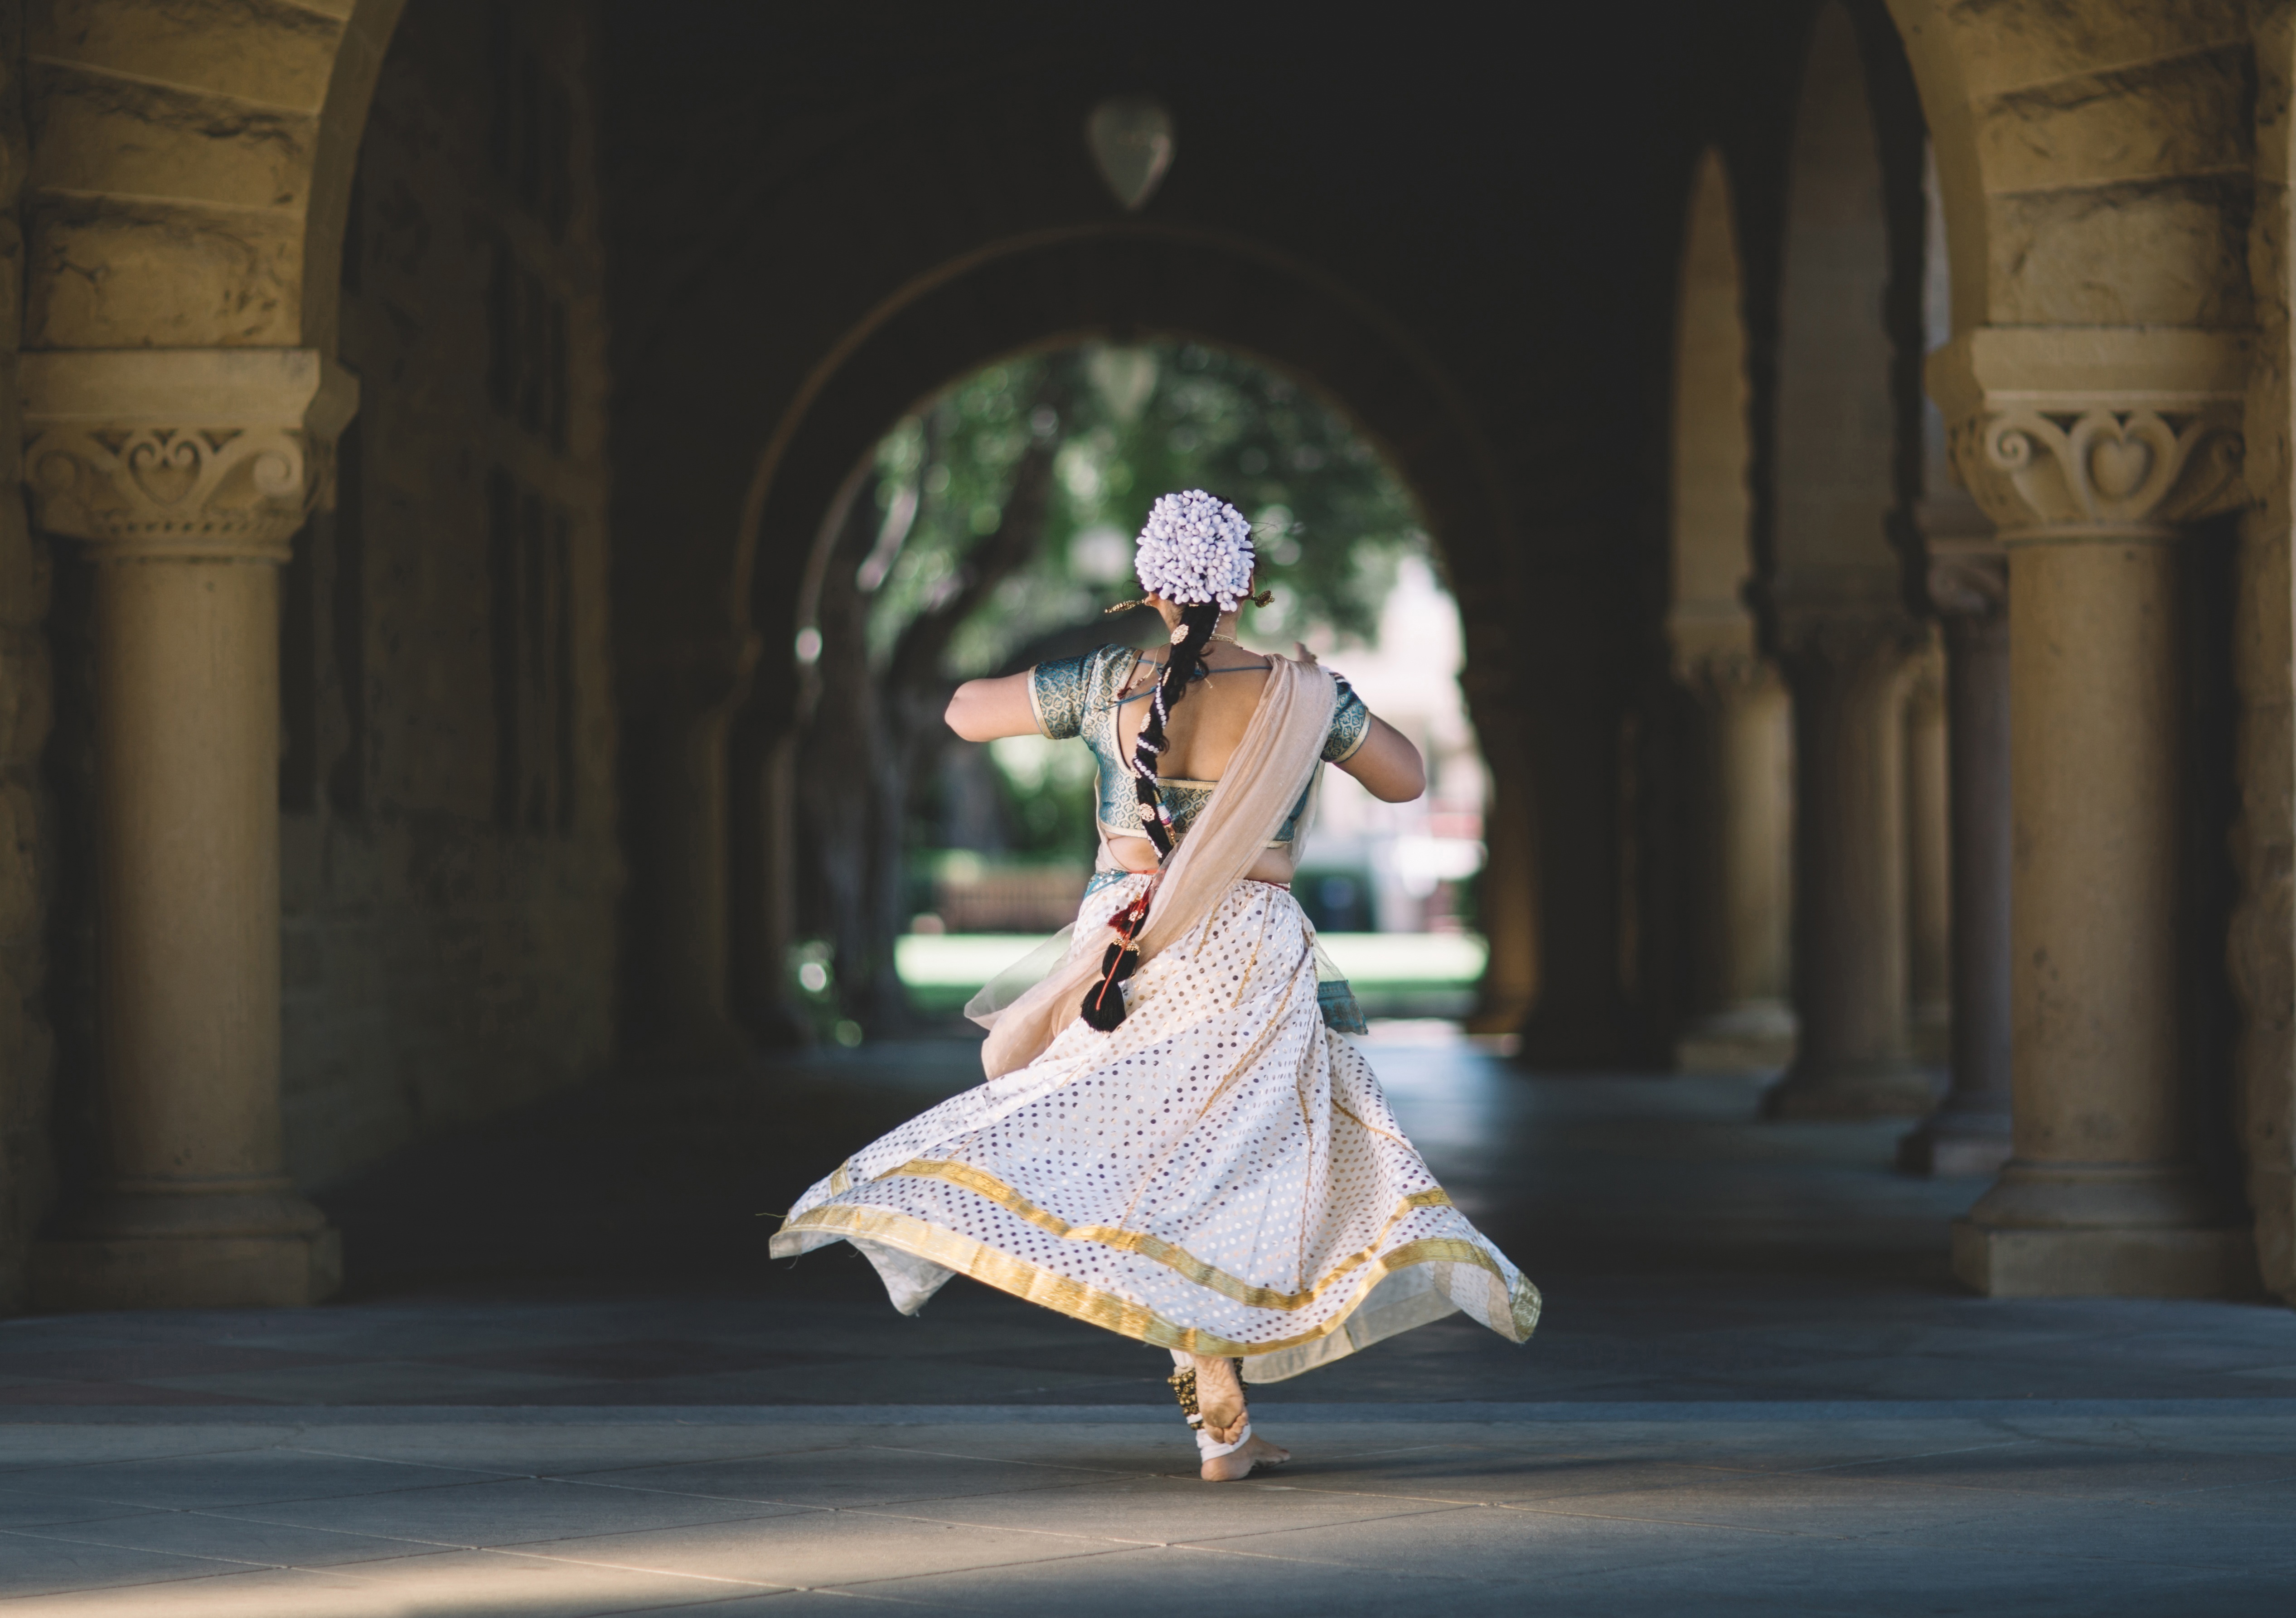 Dancing girl,art,tradition,city